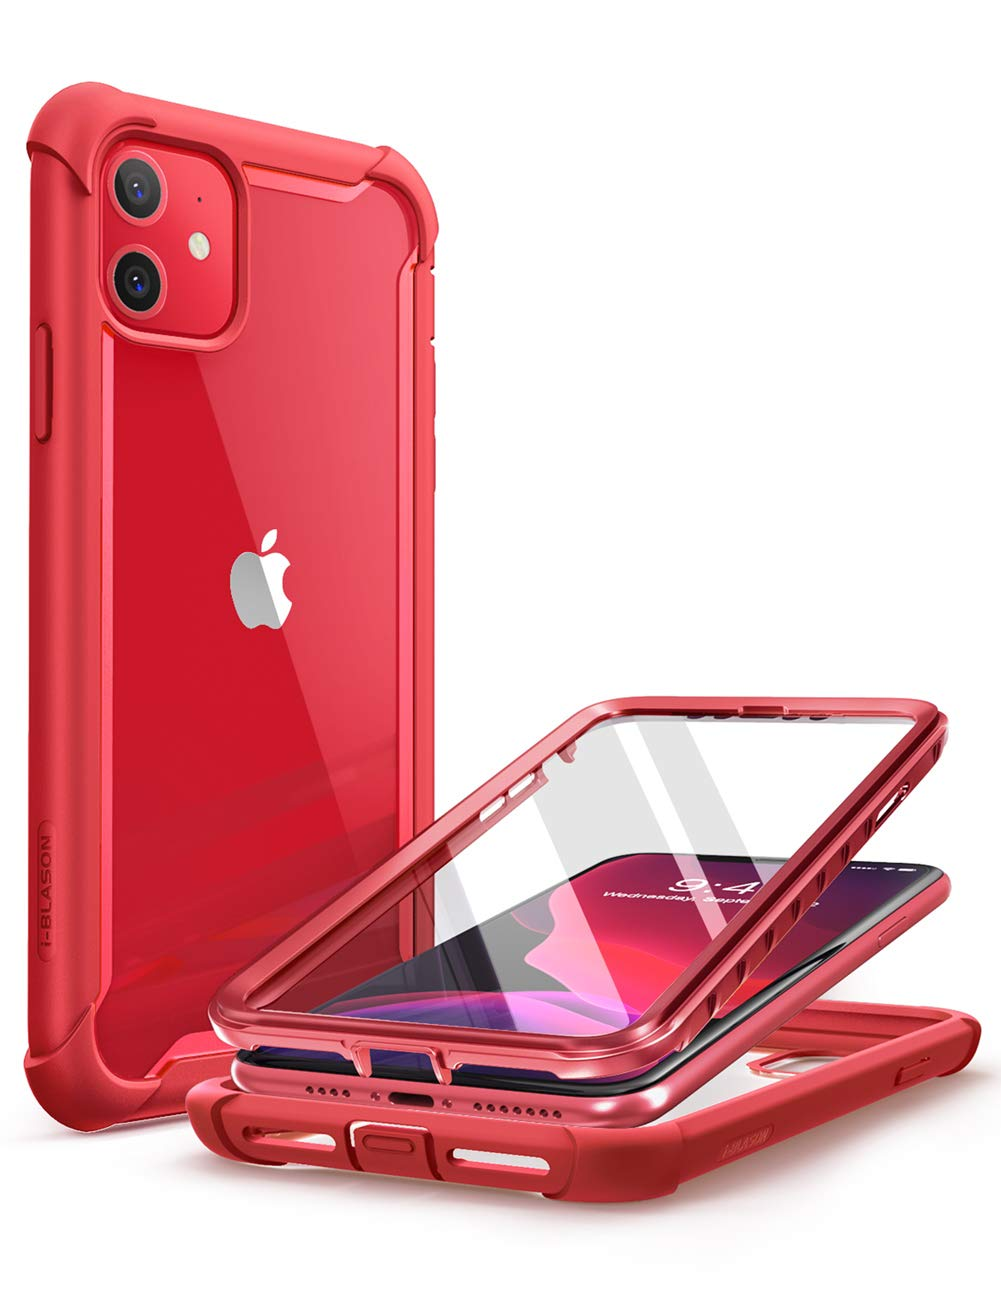 i-Blason Ares Case for iPhone 11 6.1 inch (2019 Release), Dual Layer Rugged Clear Bumper Case with Built-in Screen Protector (Metallic Red)